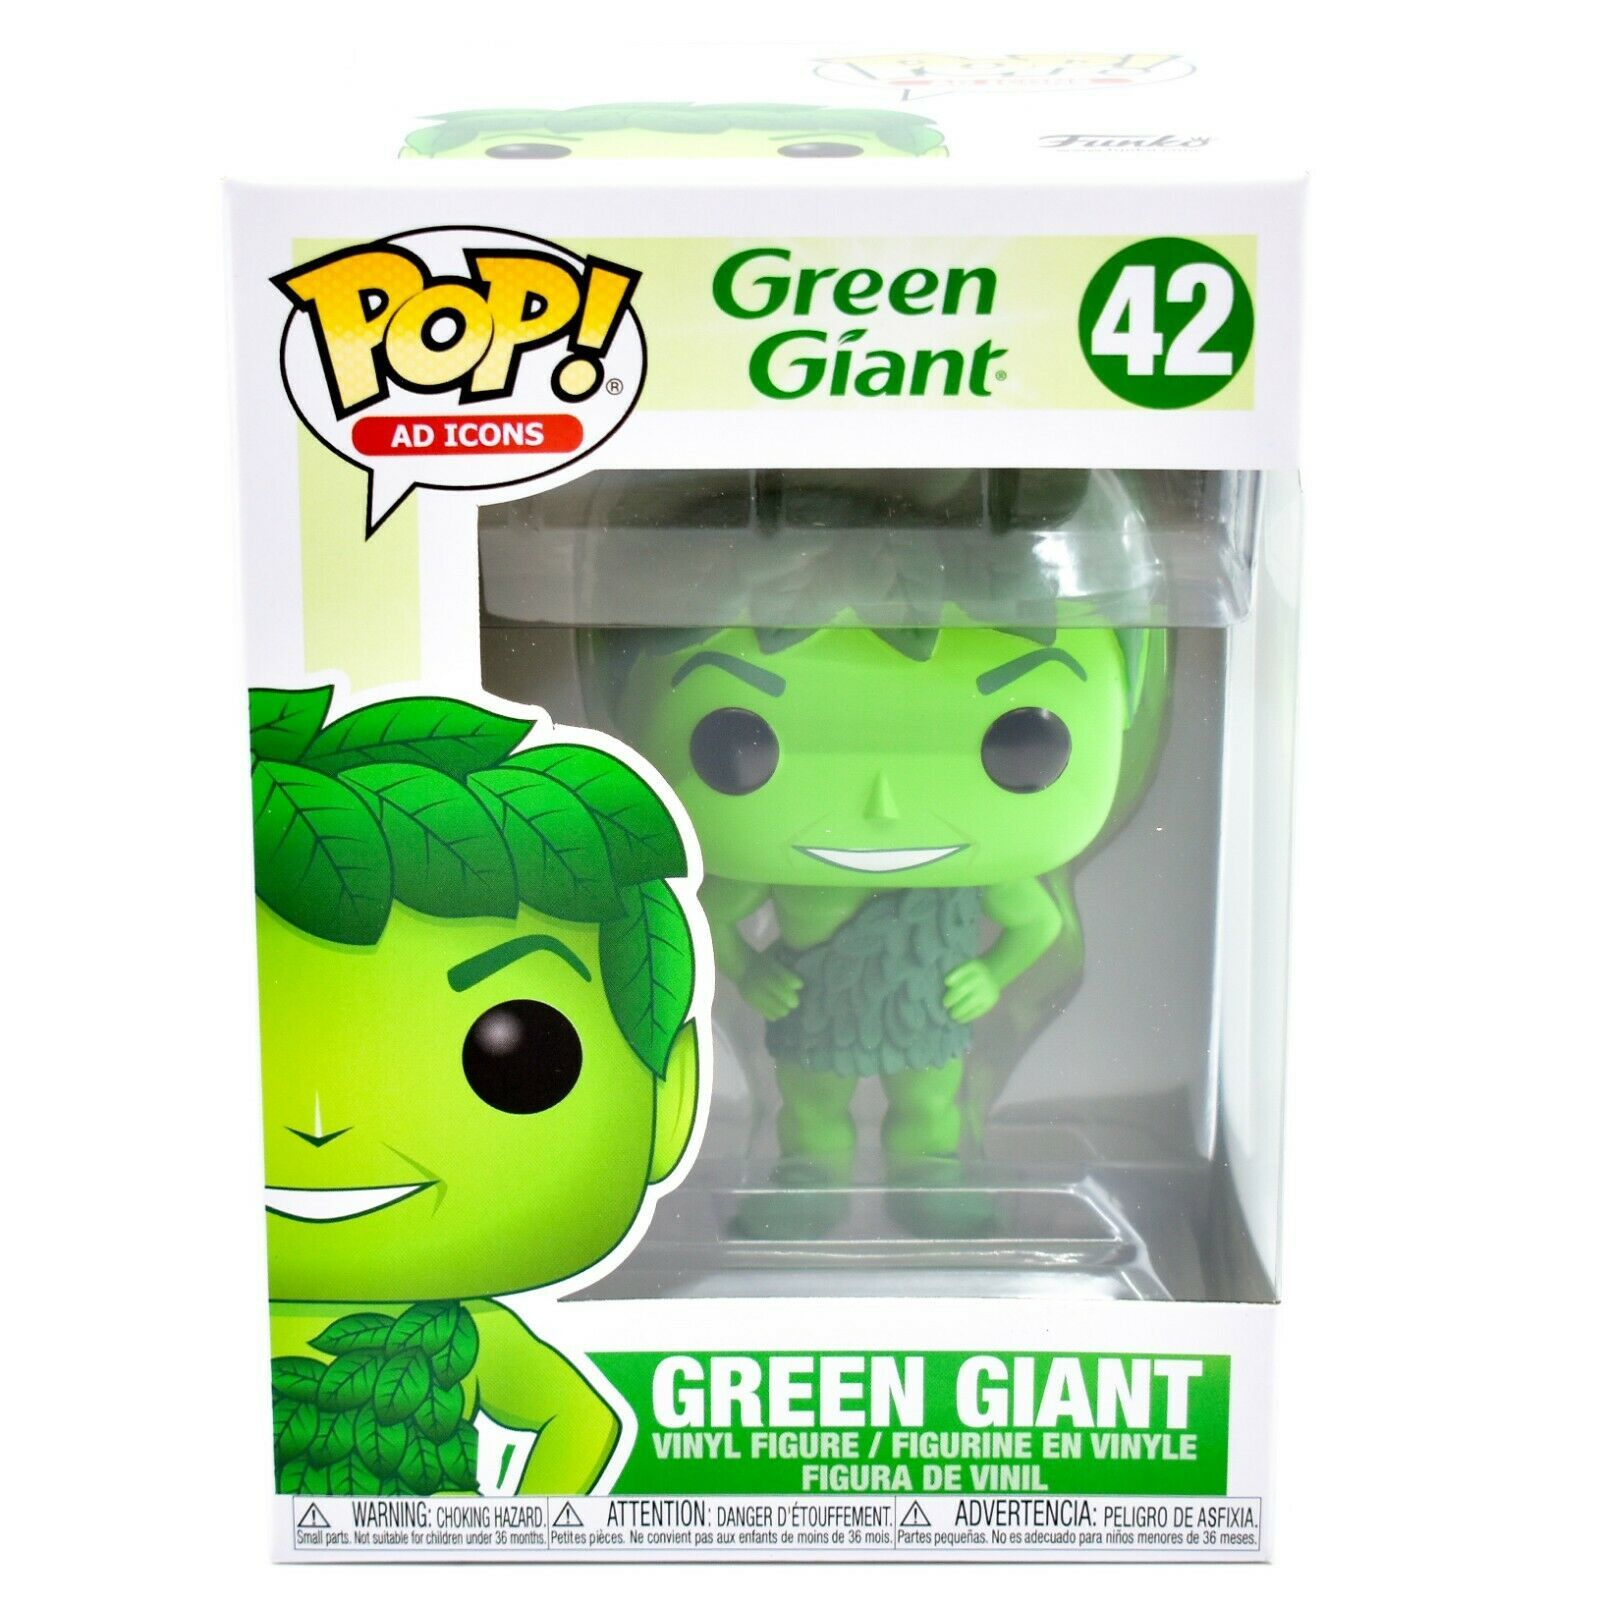 Funko Pop! Ad Icons Green Giant #42 Vinyl Action Figure